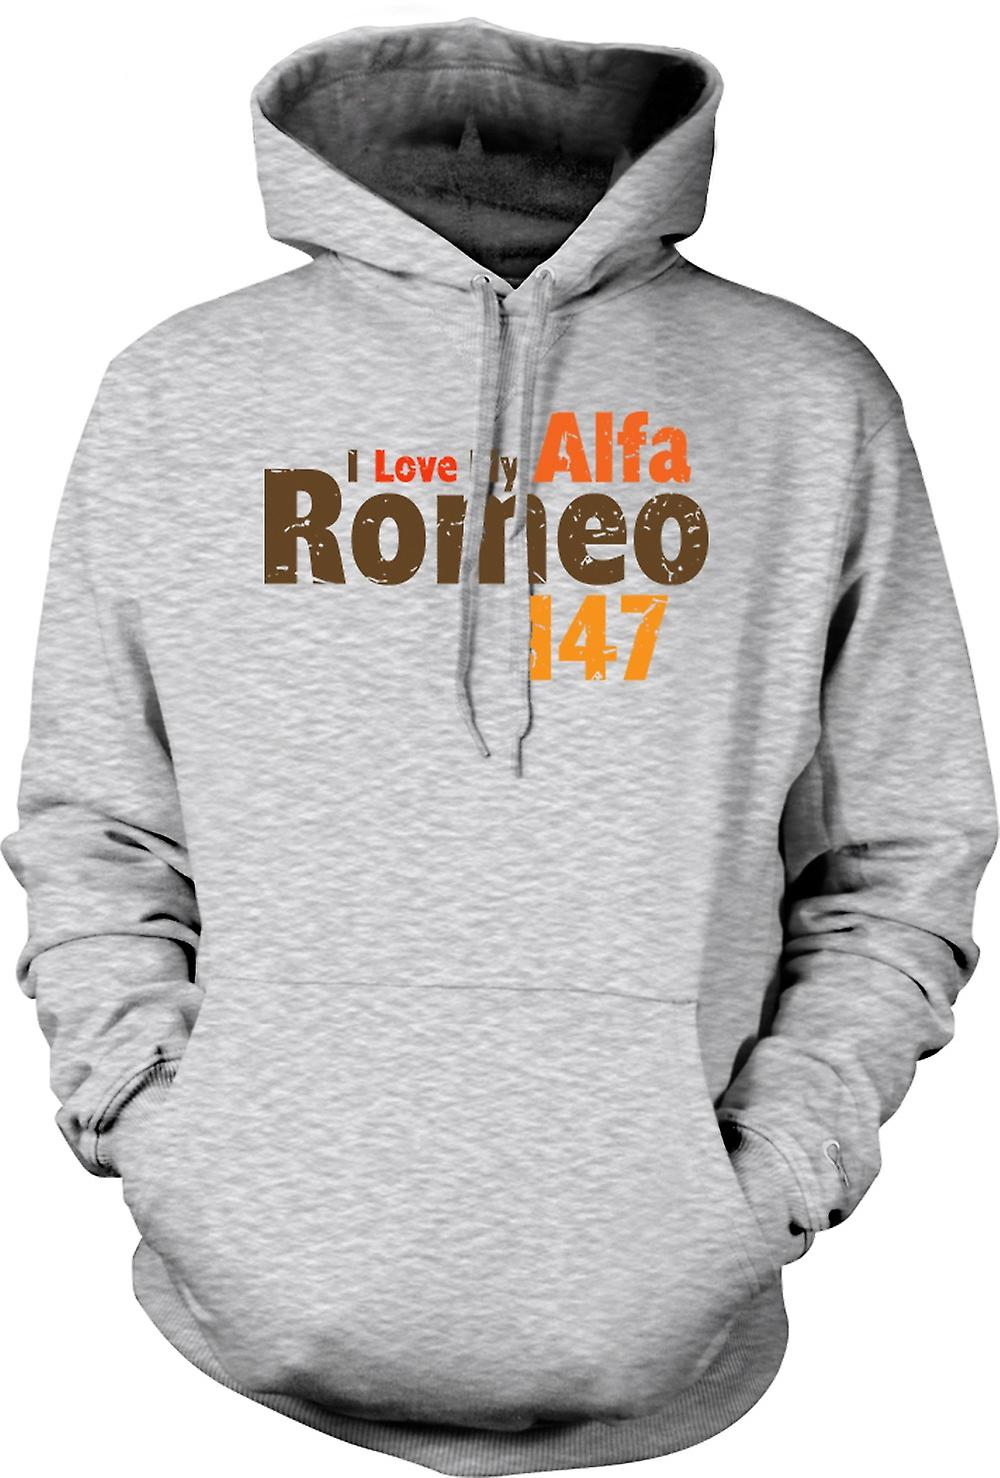 Mens Hoodie - I Love My Alfa Romeo - Car Enthusiast